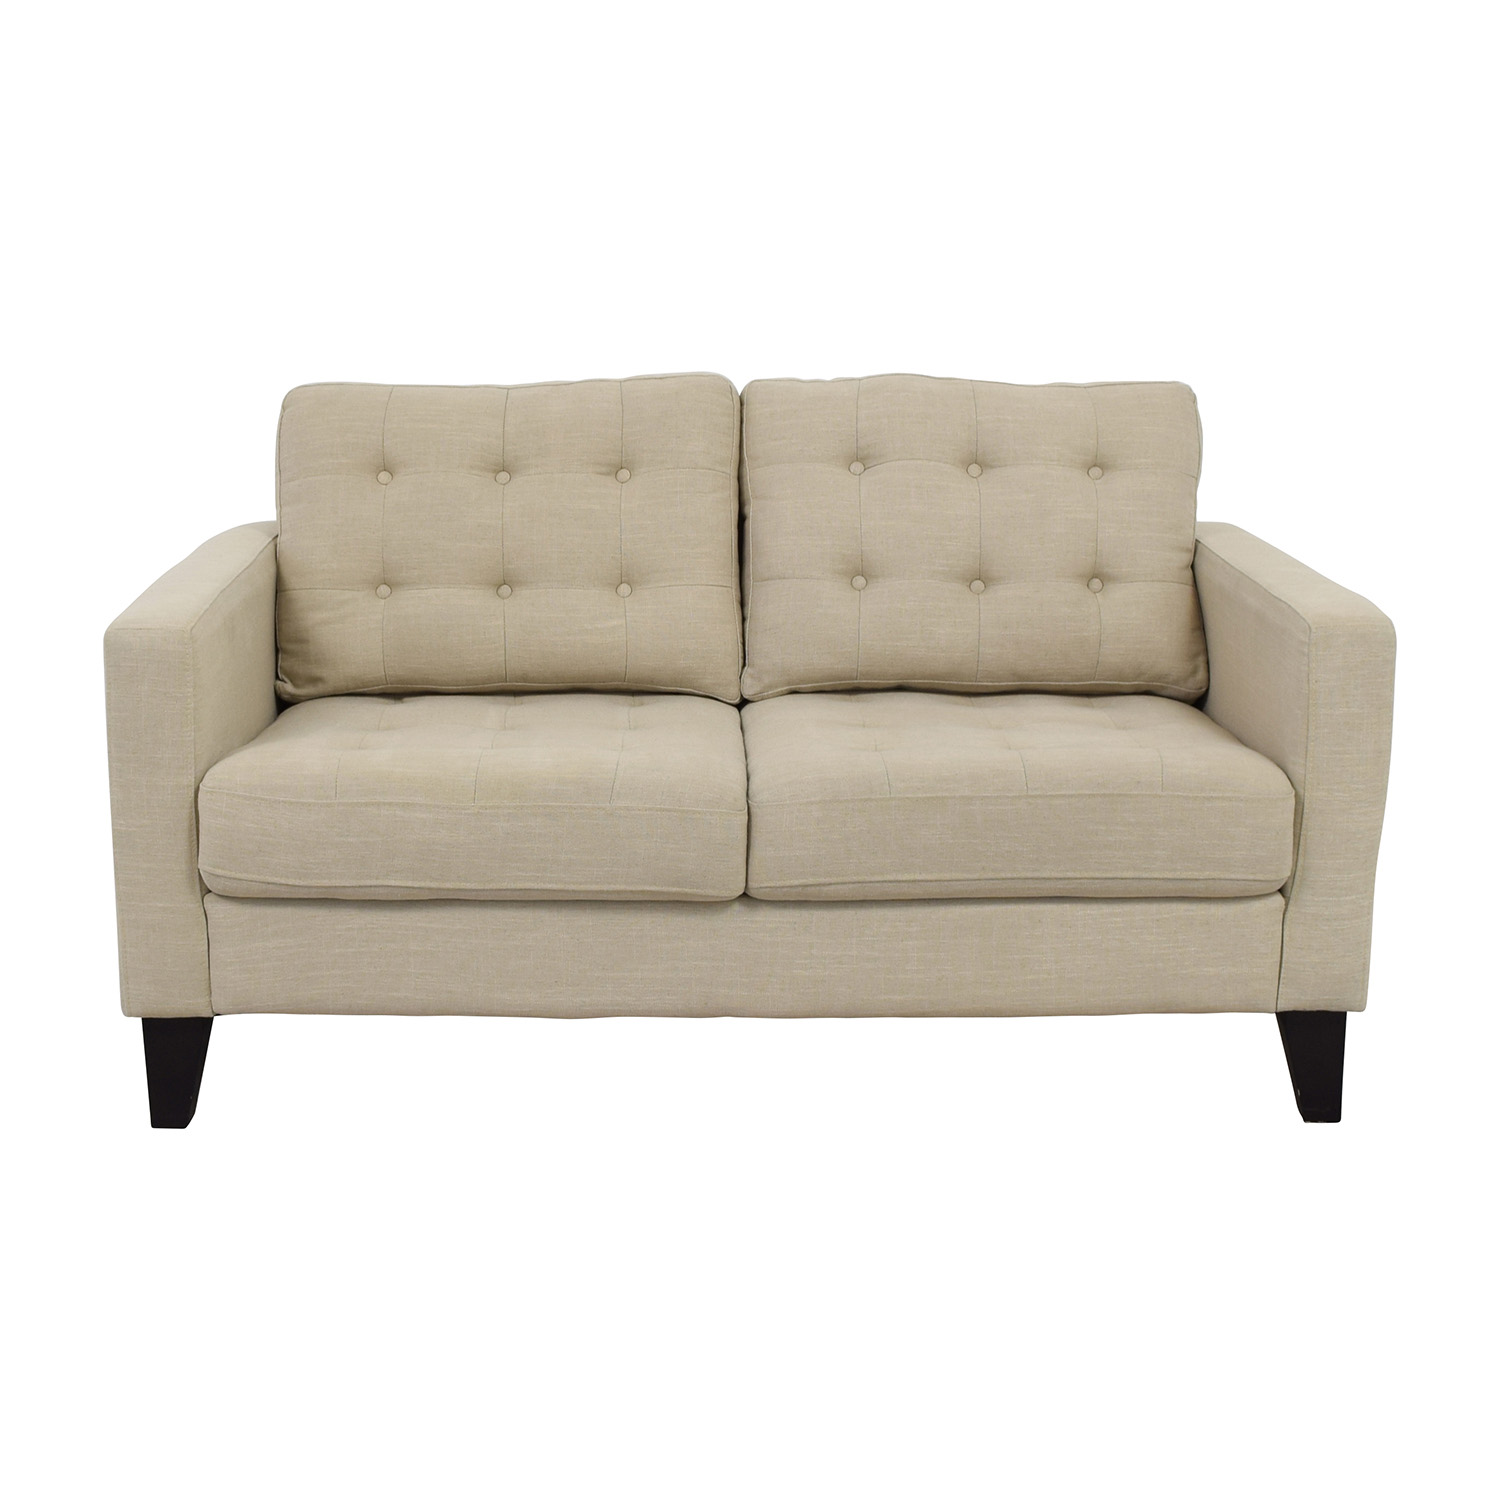 olive loveseat market products mid green century modern furniture jenny pride loom midcentury tufted button us